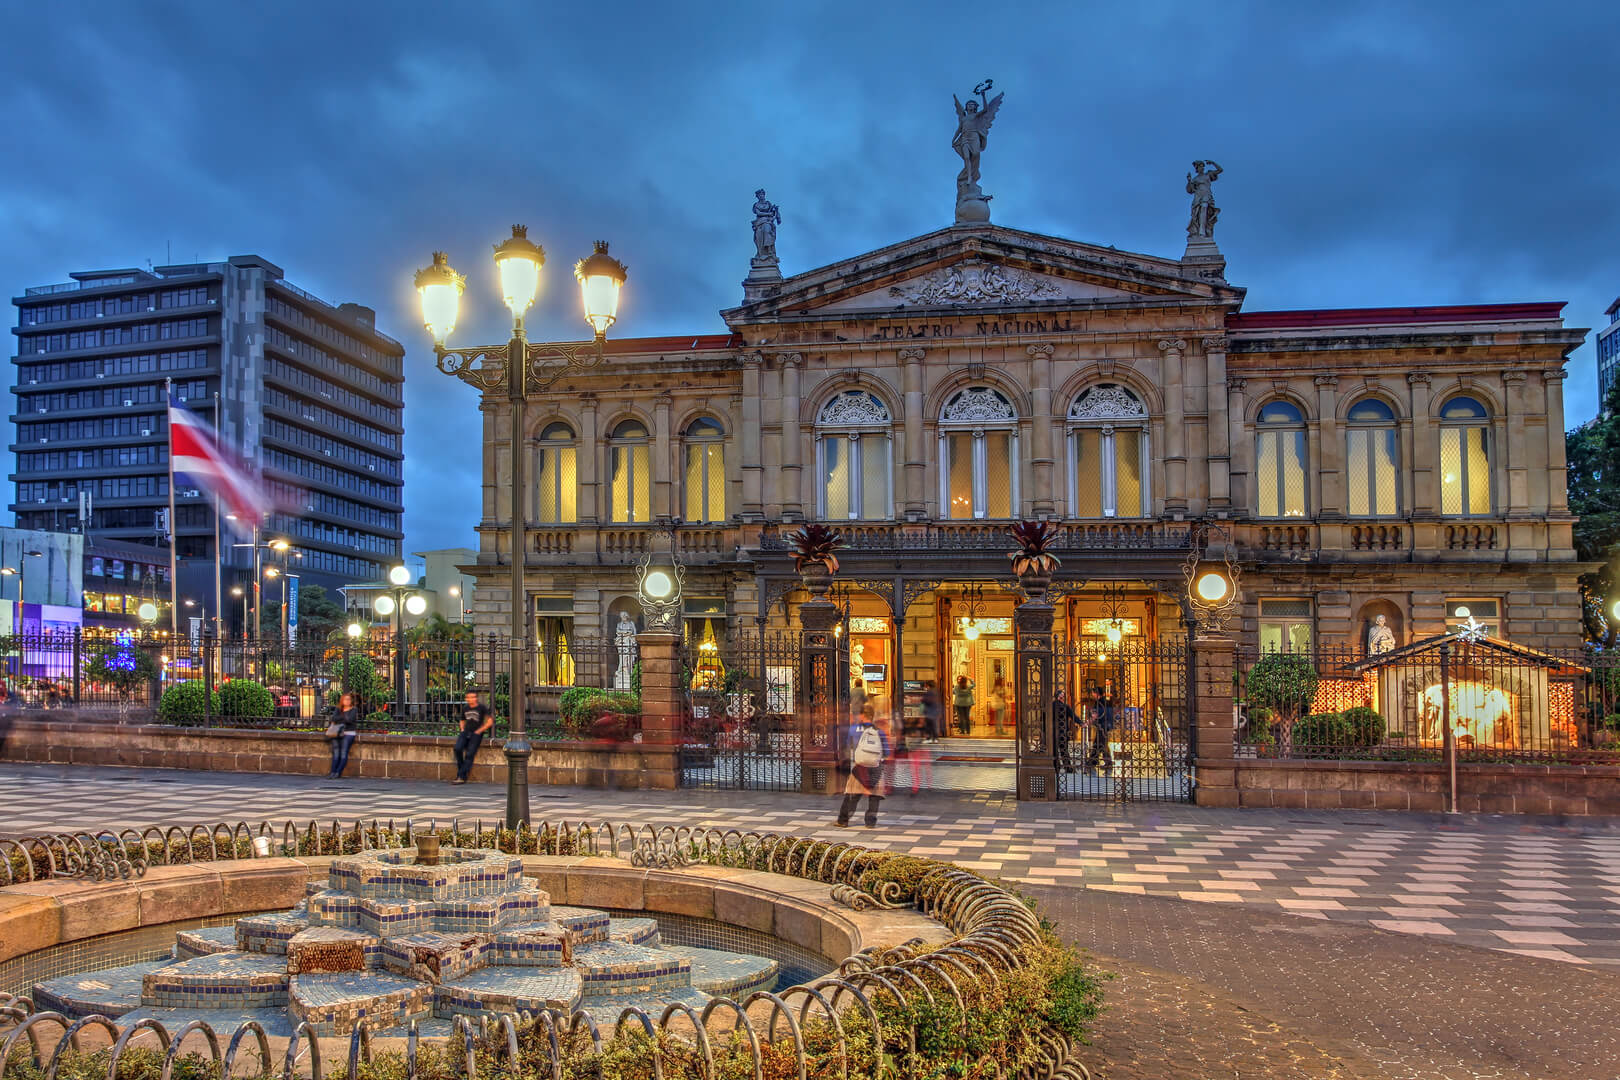 Night scene of the square in front of the famous National Theater of Costa Rica in San Jose